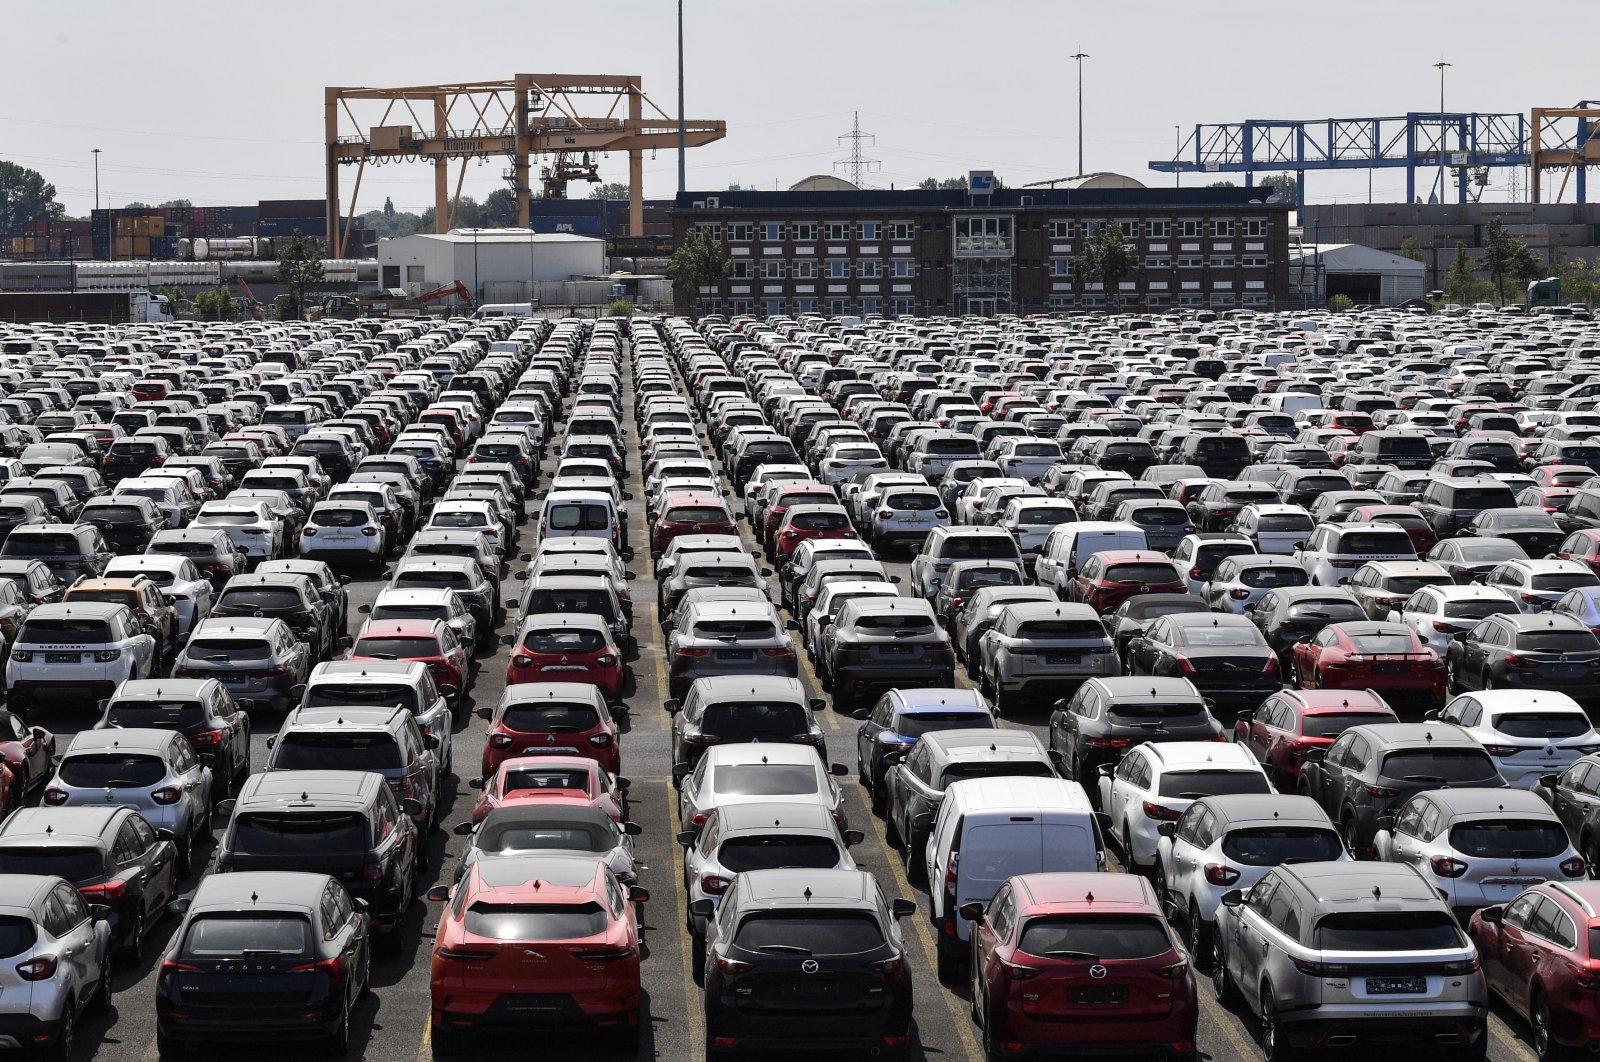 New cars are stored at a logistic port in Duisburg, Germany, June 3, 2020. (AP Photo)